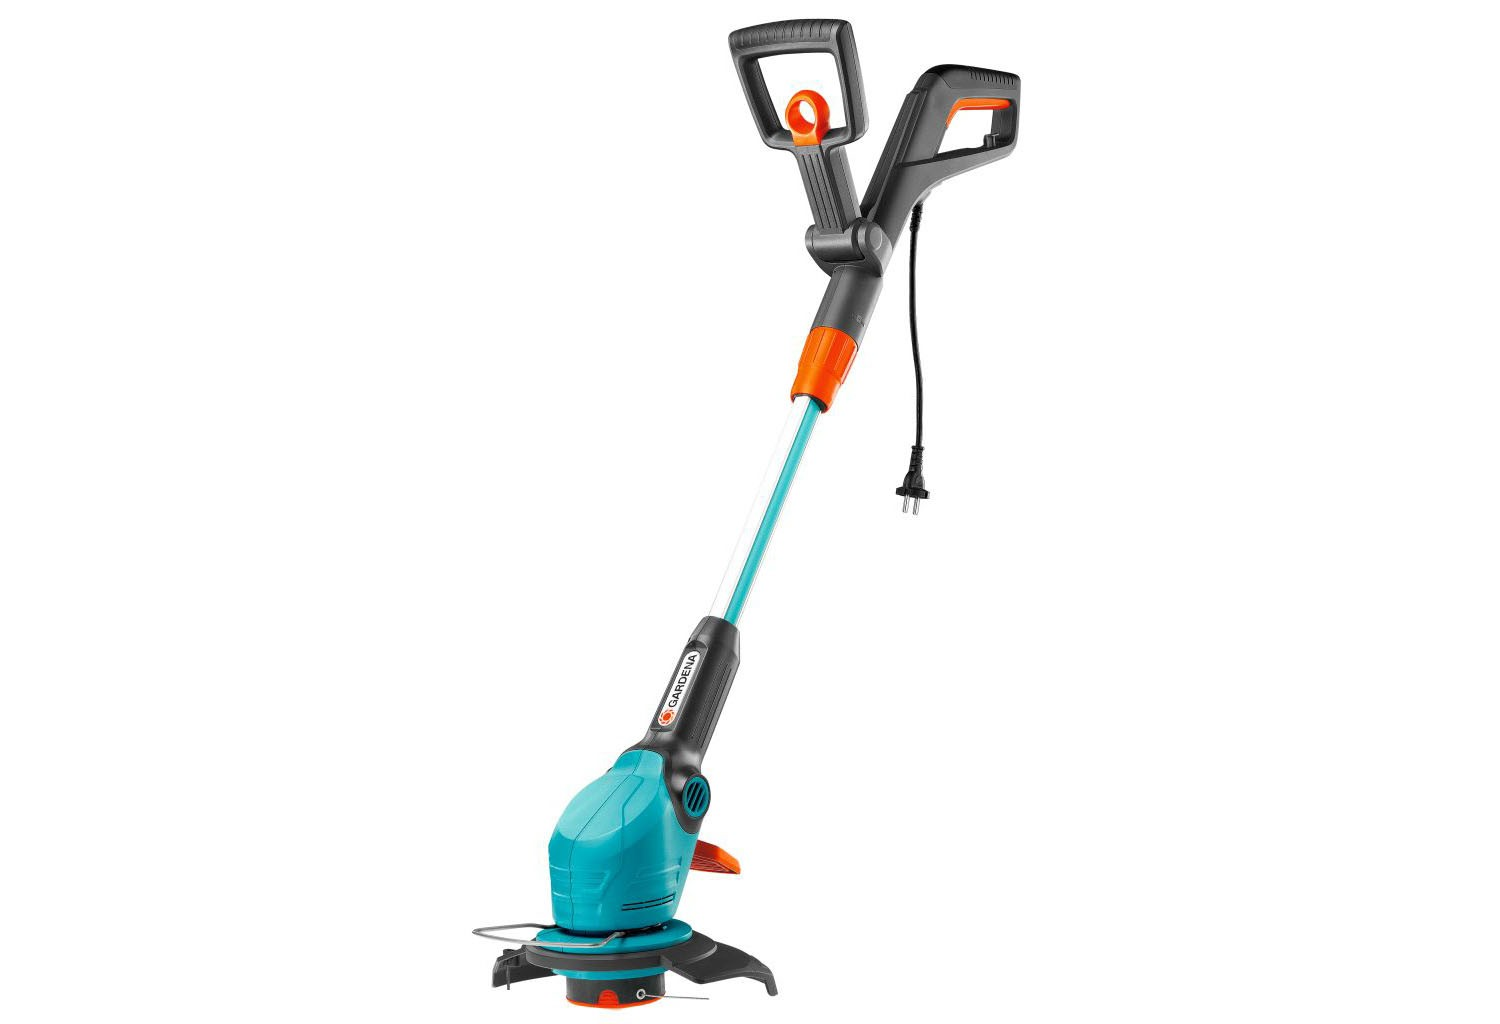 Electric Trimmer Gardena Easycut 400 25